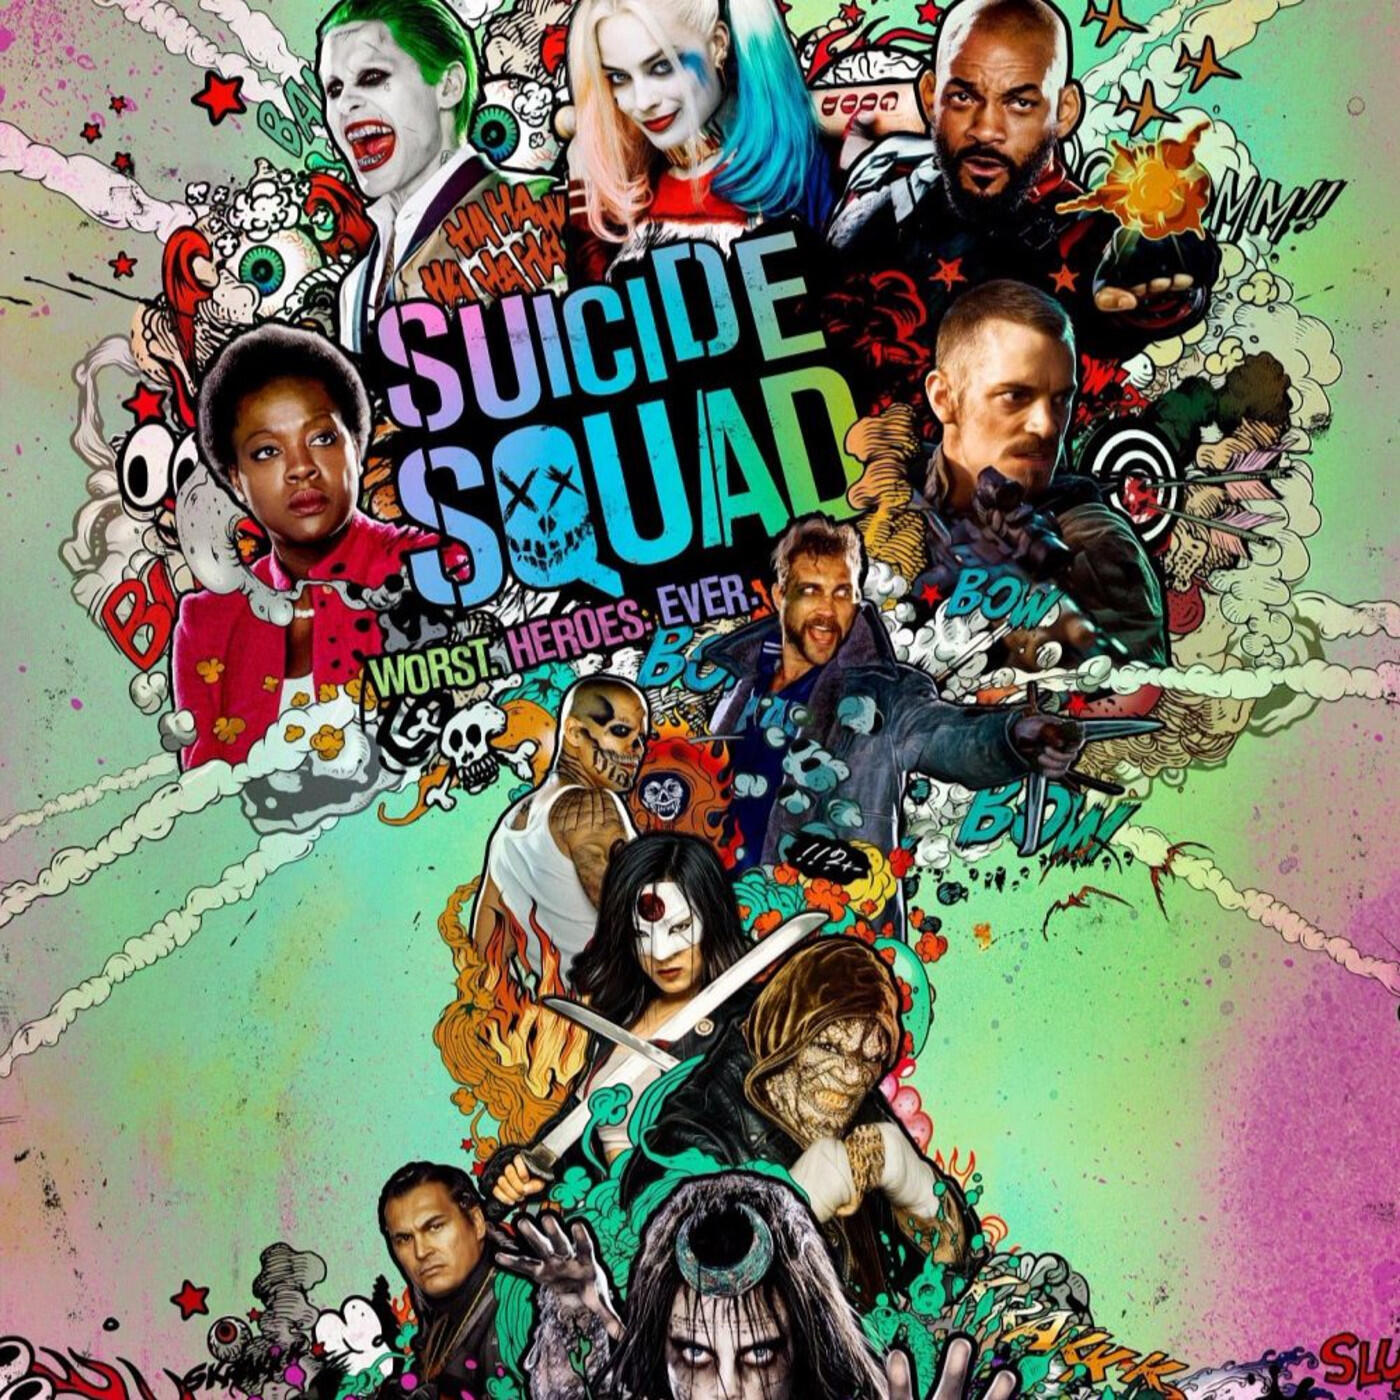 Podcast Episode: #BGNPodcast Extra - Suicide Squad